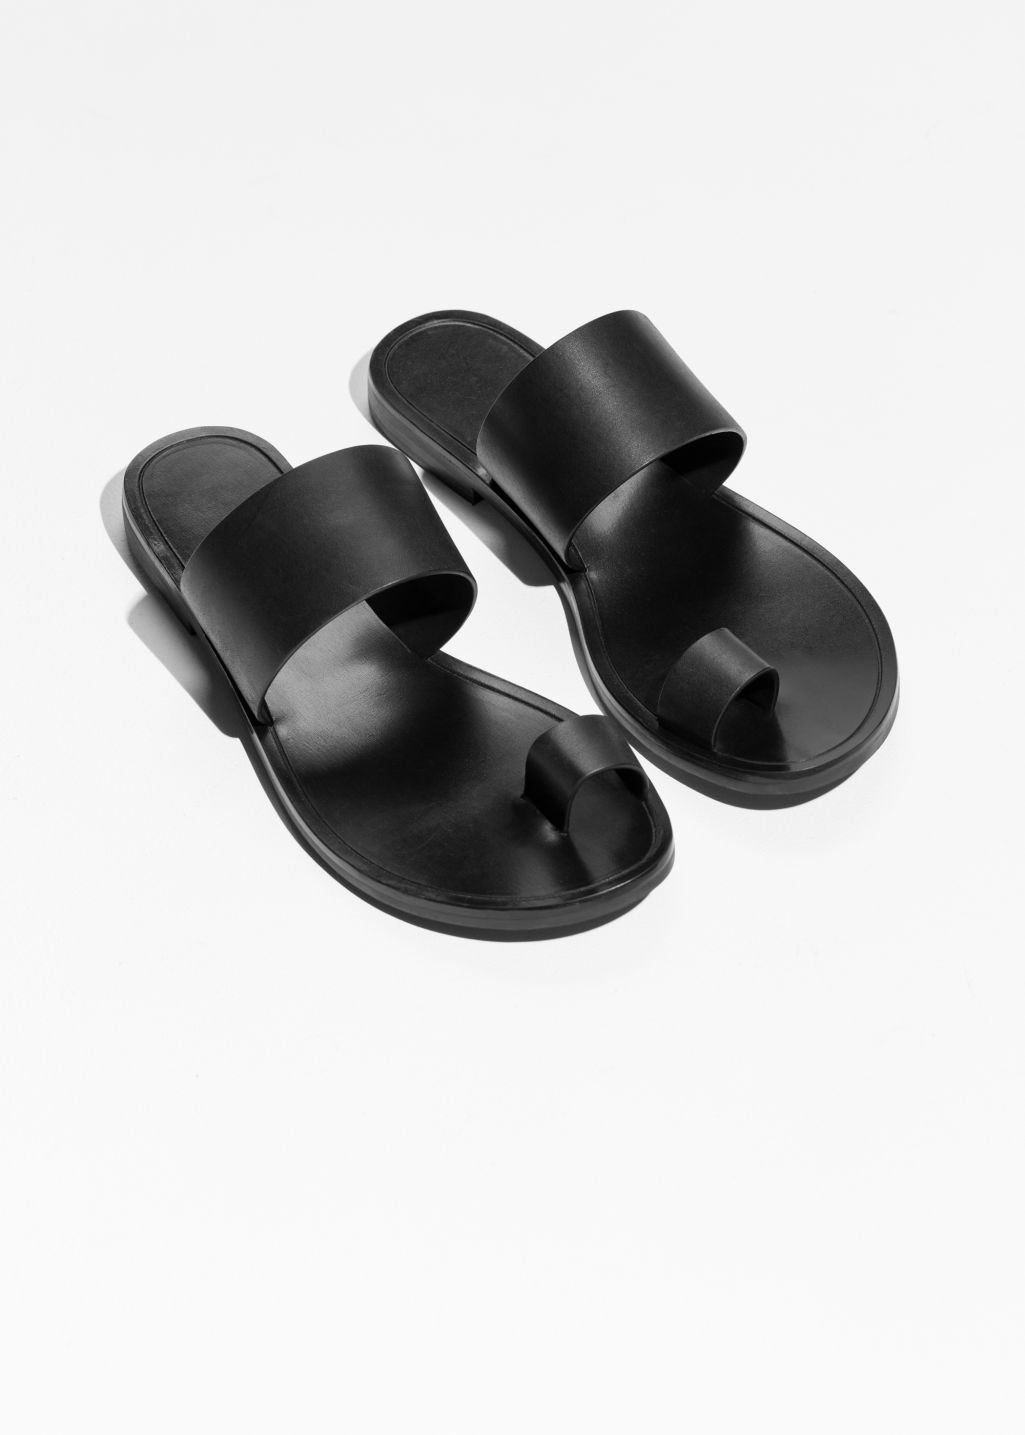 ee86dbf34 Toe Strap Sandals - Black - Flat sandals -   Other Stories